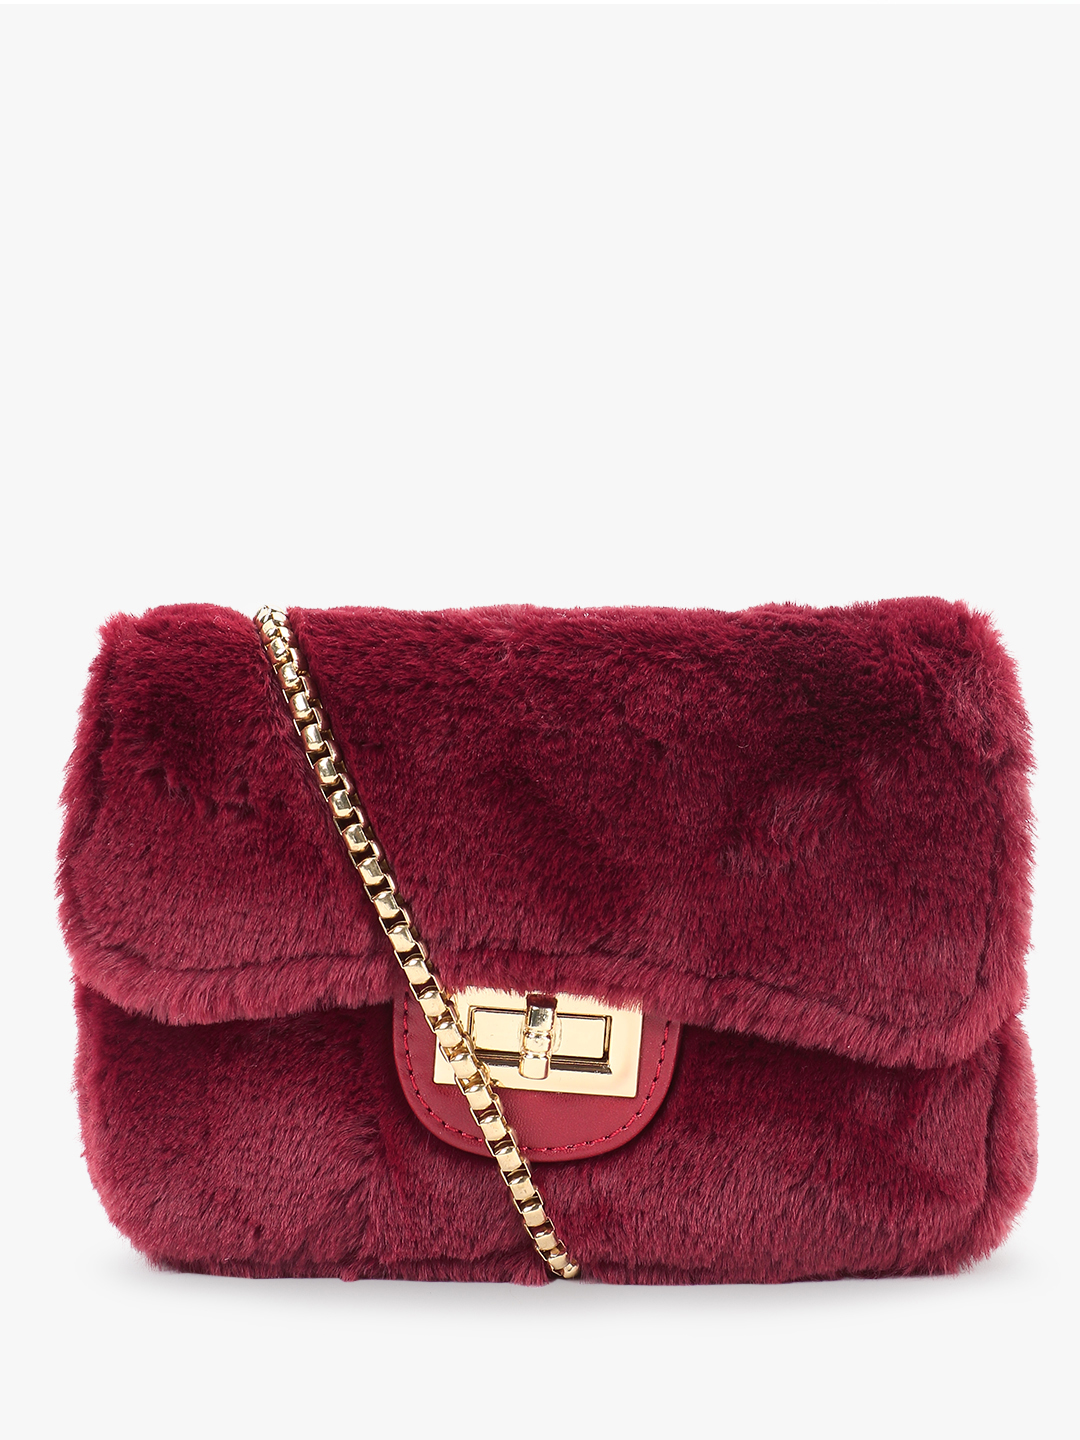 Origami Lily Maroon Faux Fur Sling Bag 1